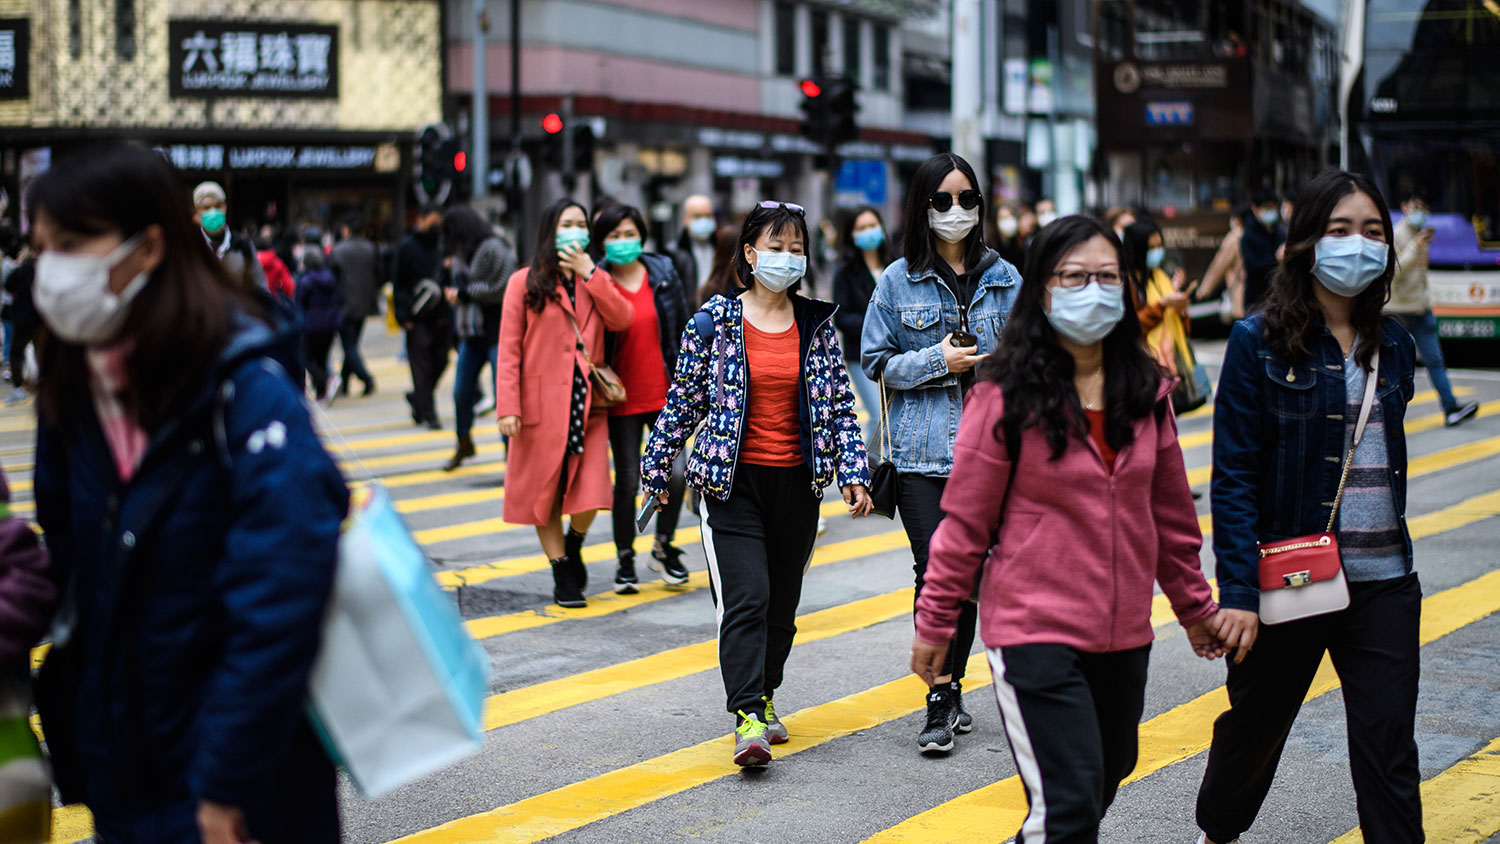 Pedestrians wearing masks cross the road during the Lunar New Year holiday in Hong Kong, Jan. 27, 2020. (AFP)